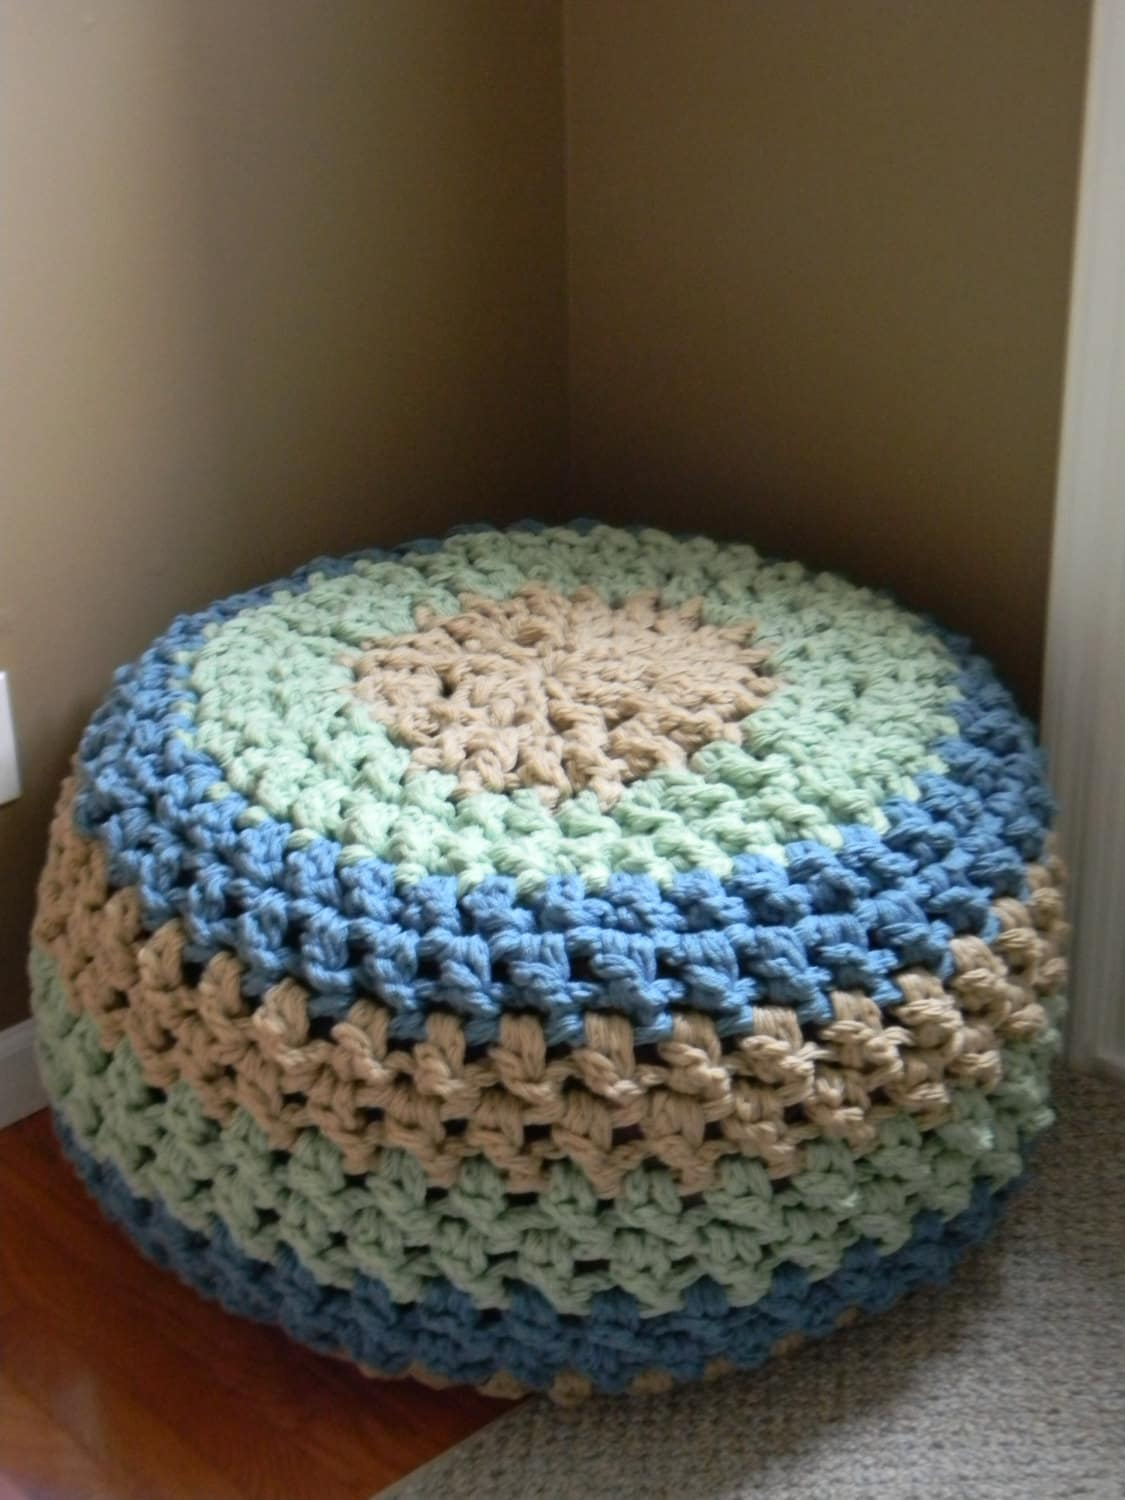 How to make bean bag chairs - Free The Lucky Hanks Signature Crochet Pouf Pattern Pattern Only With Free Bean Bag Pattern